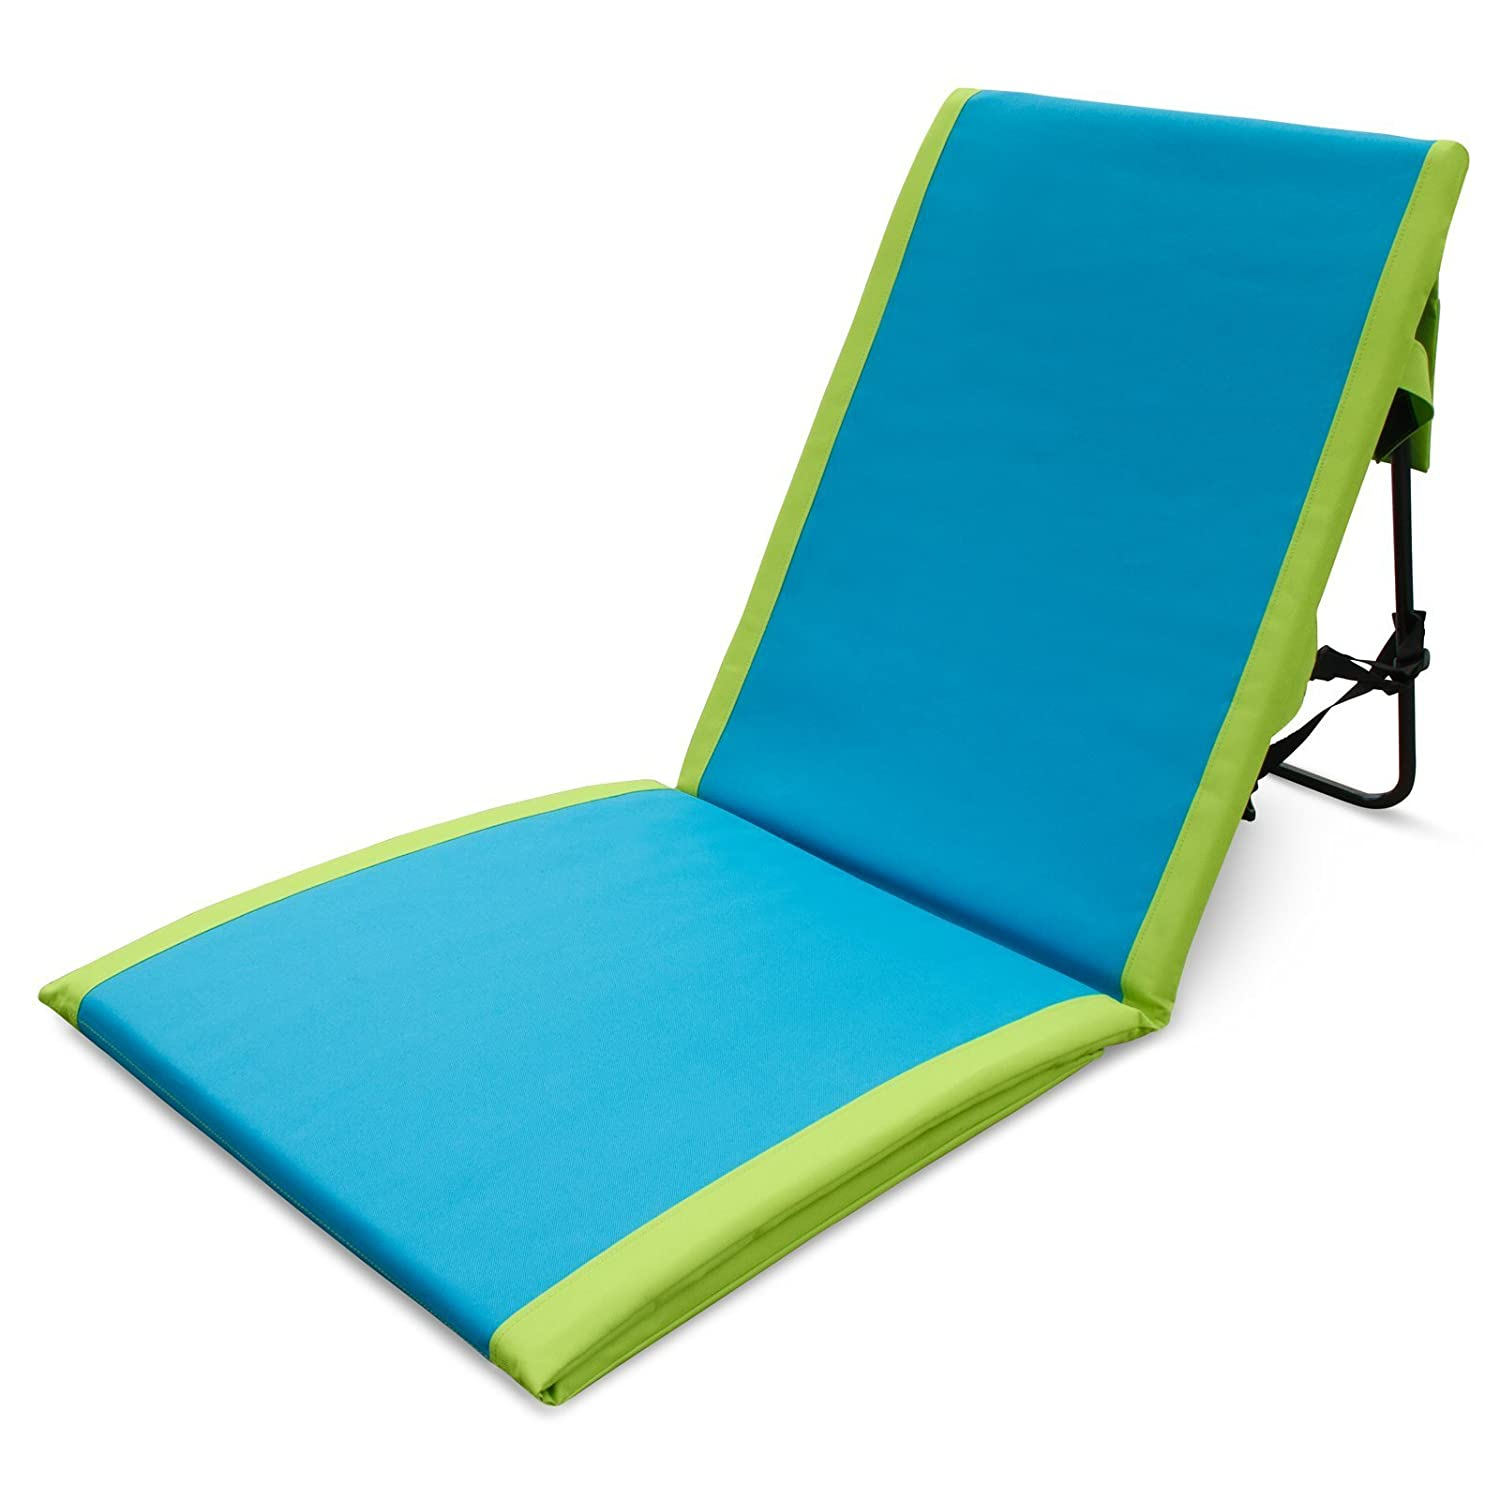 Pacific Breeze Lounger 2 Pack